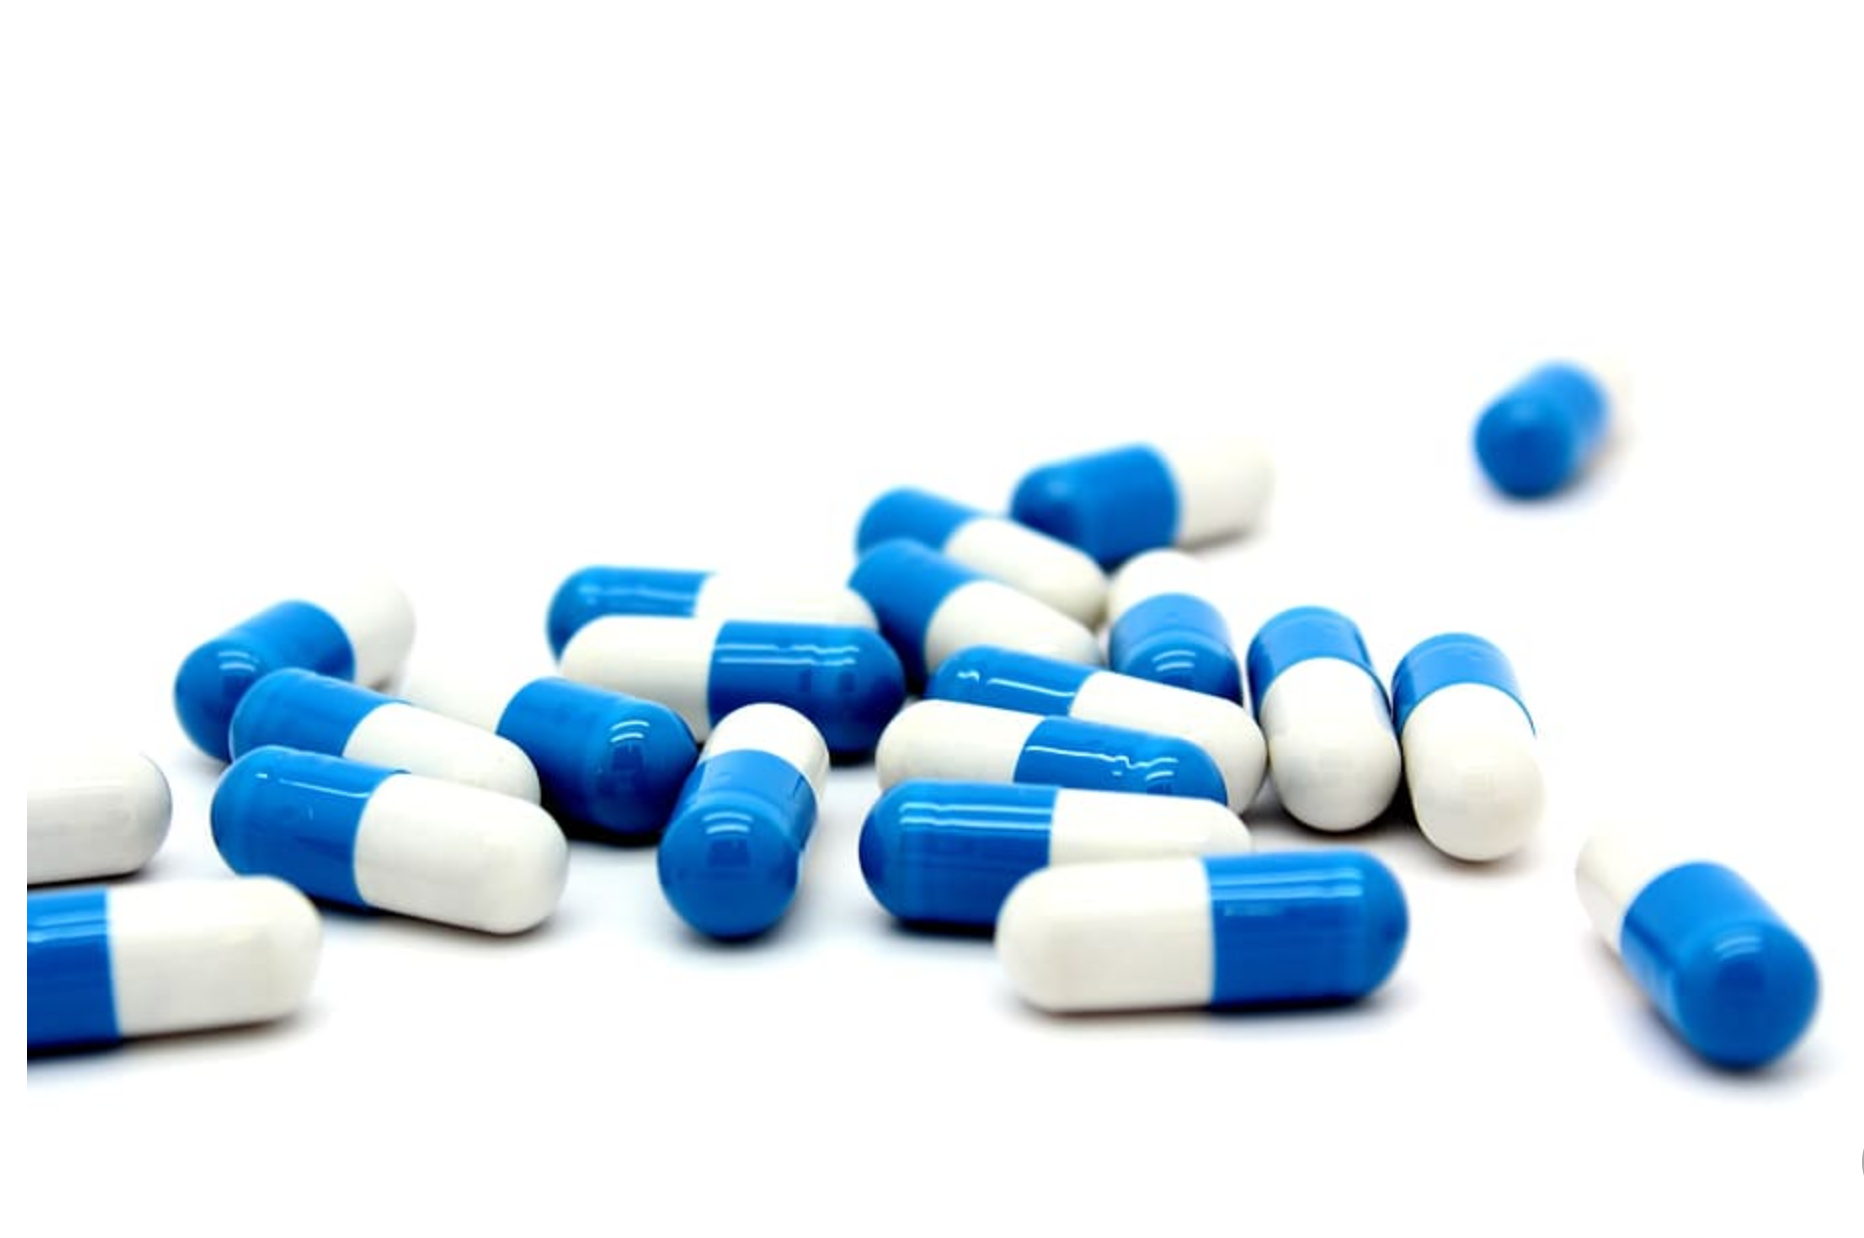 MEDICATION SAFETY IN HOMECARE